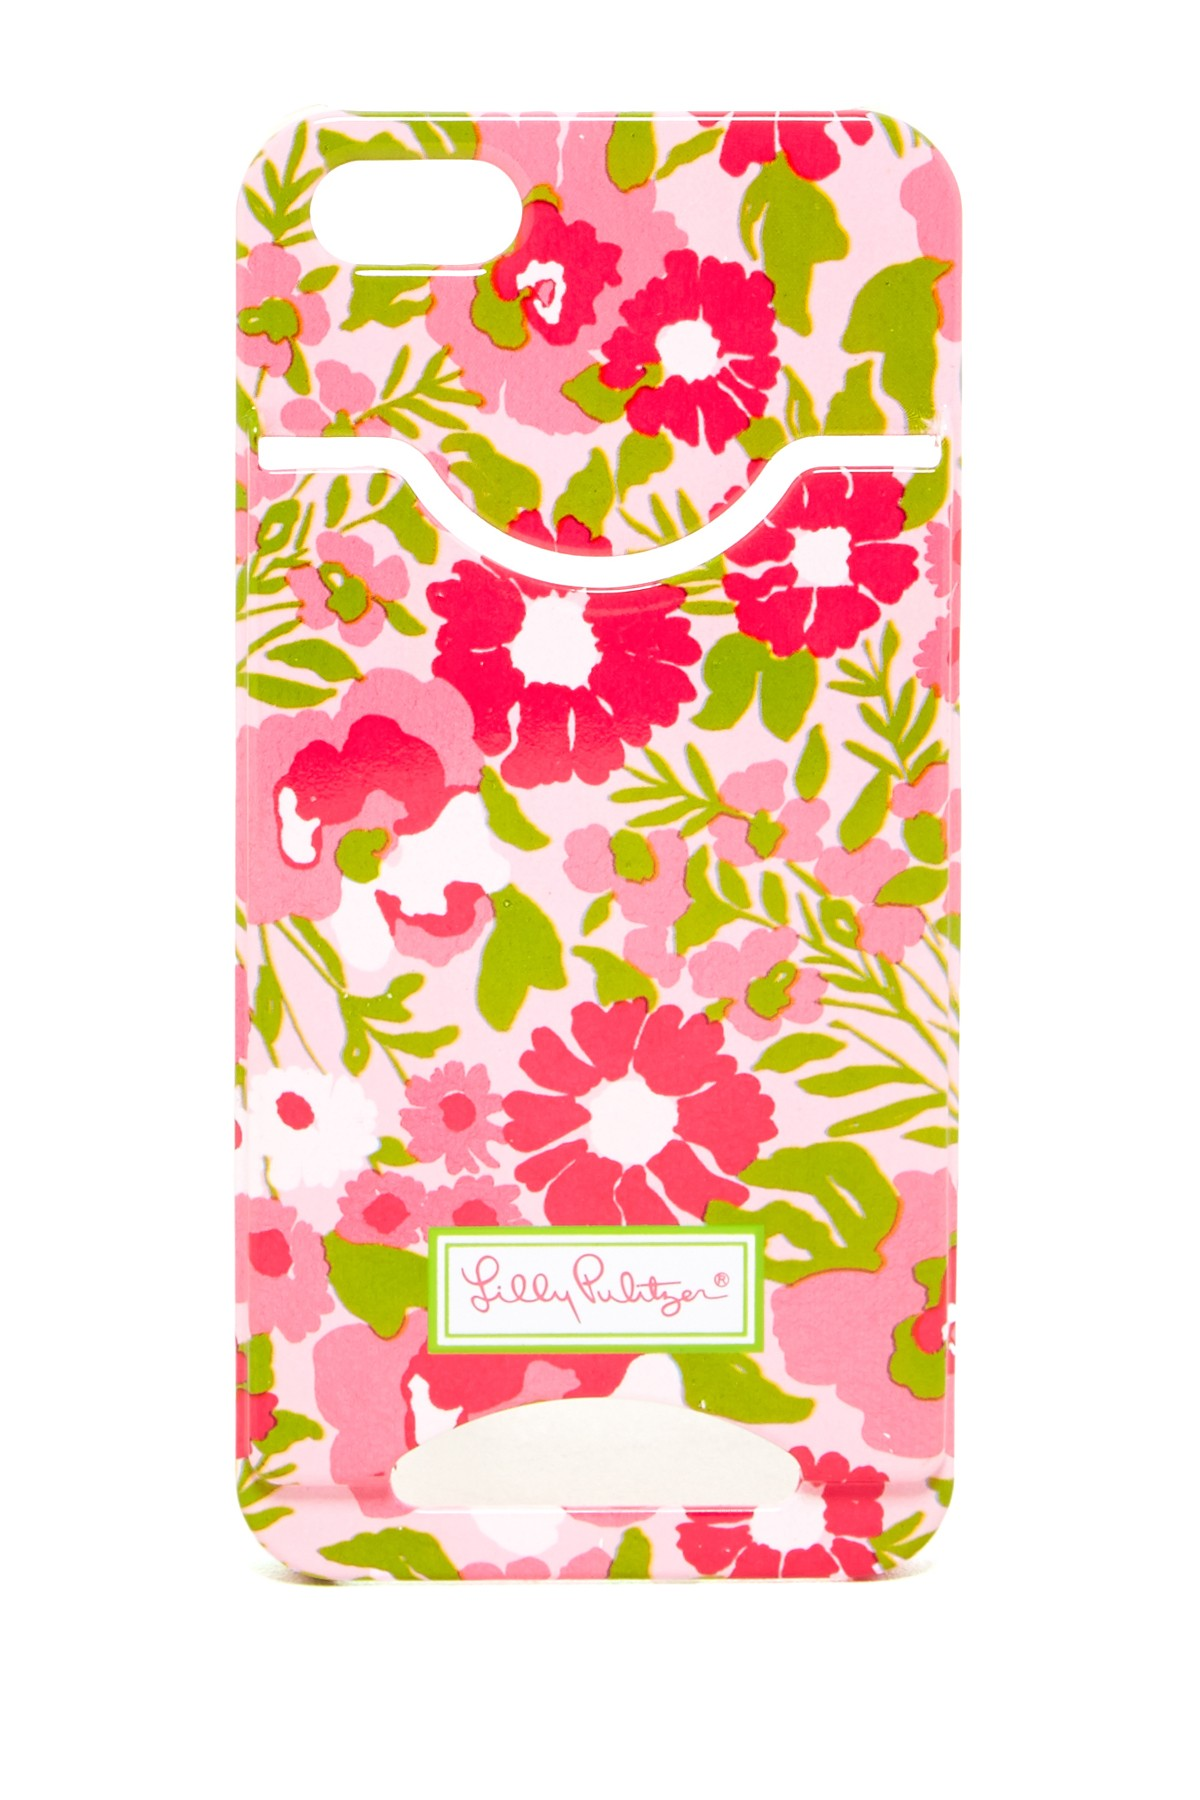 Enchanting Lilly Pulitzer Phone Case for Phone Accessories Ideas: Lilly Pulitzer Wristlet Wallet | Vera Bradley Ipad Covers | Lilly Pulitzer Phone Case